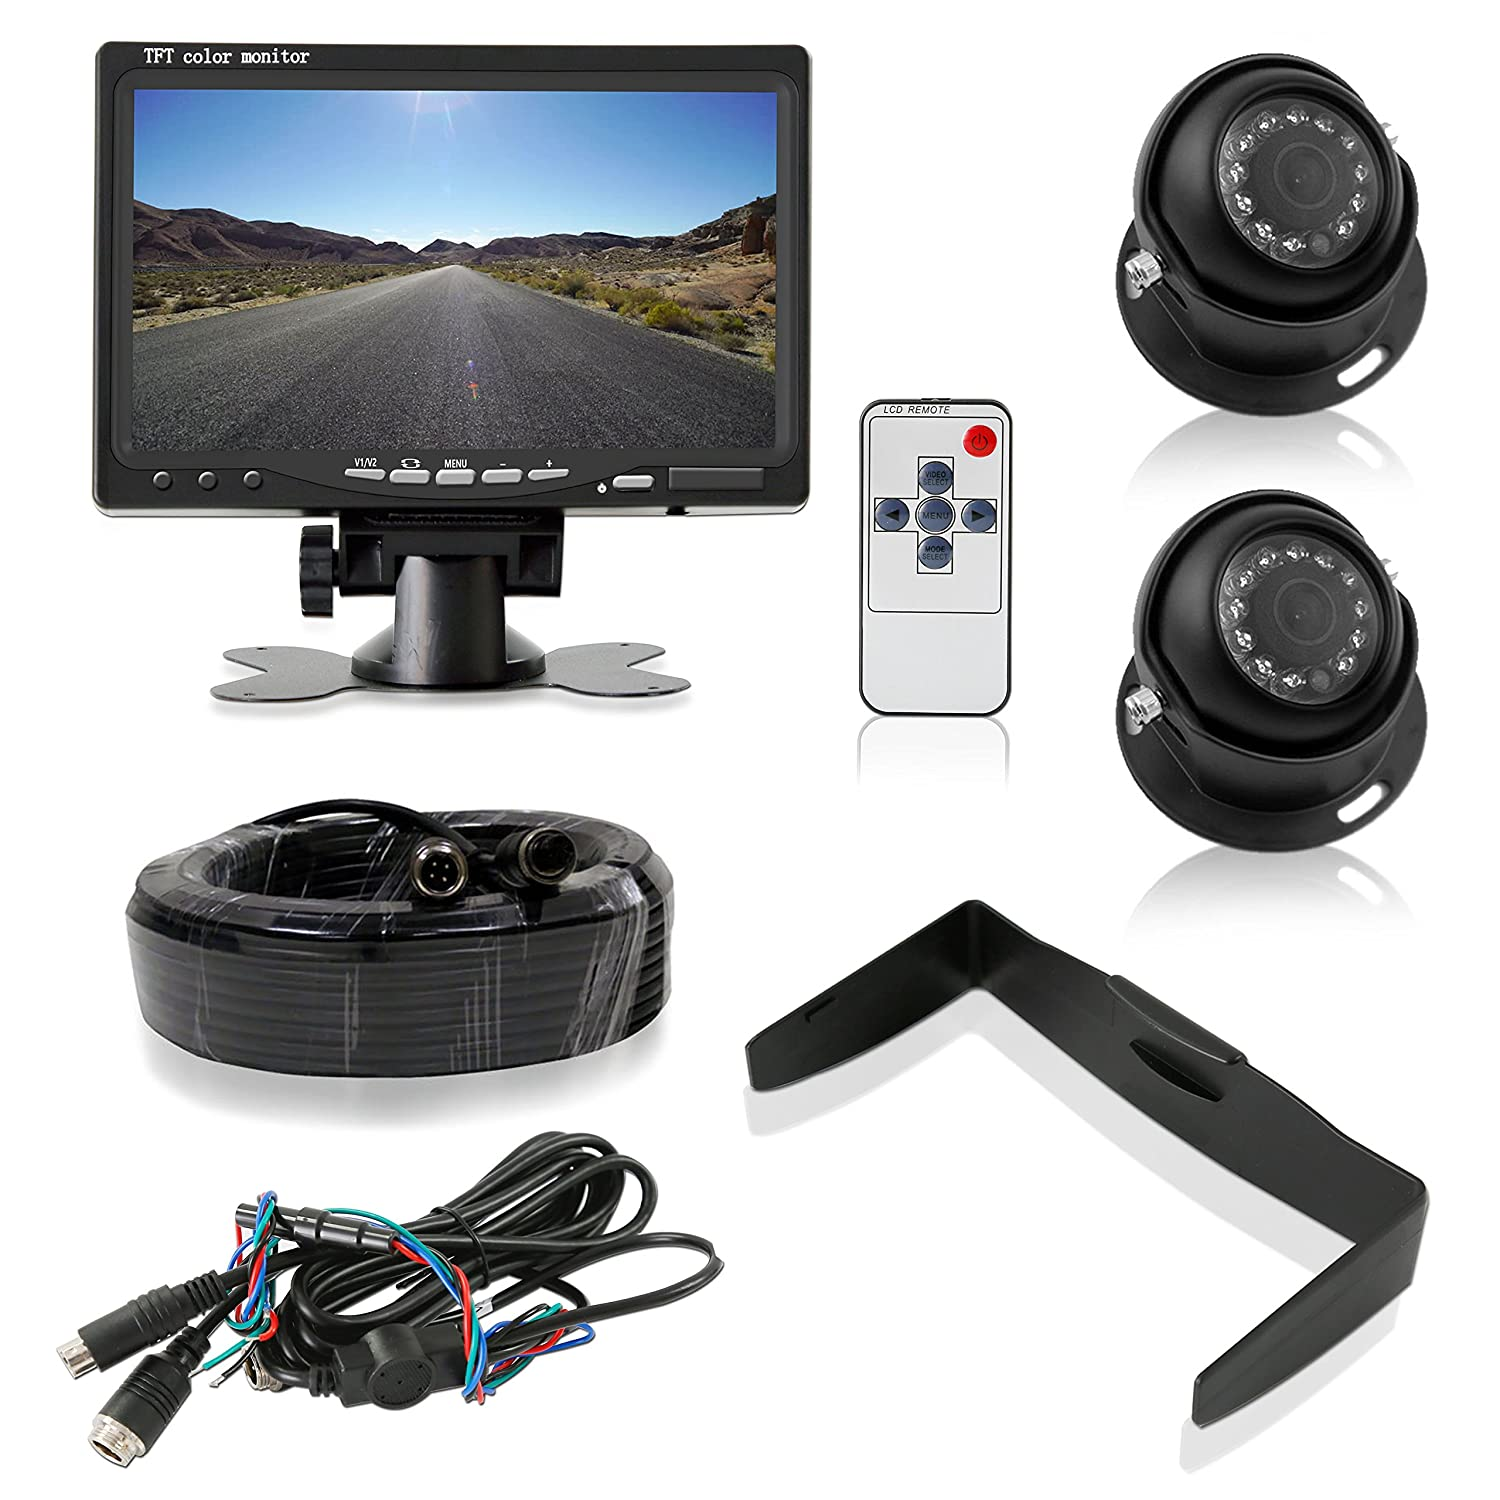 "Pyle Backup Camera System with 2 Weatherproof Cams & 7"" Rear View Dash Mount Monitor - Night Vision, Full Color Video Security for Truck, Van, Vehicle"